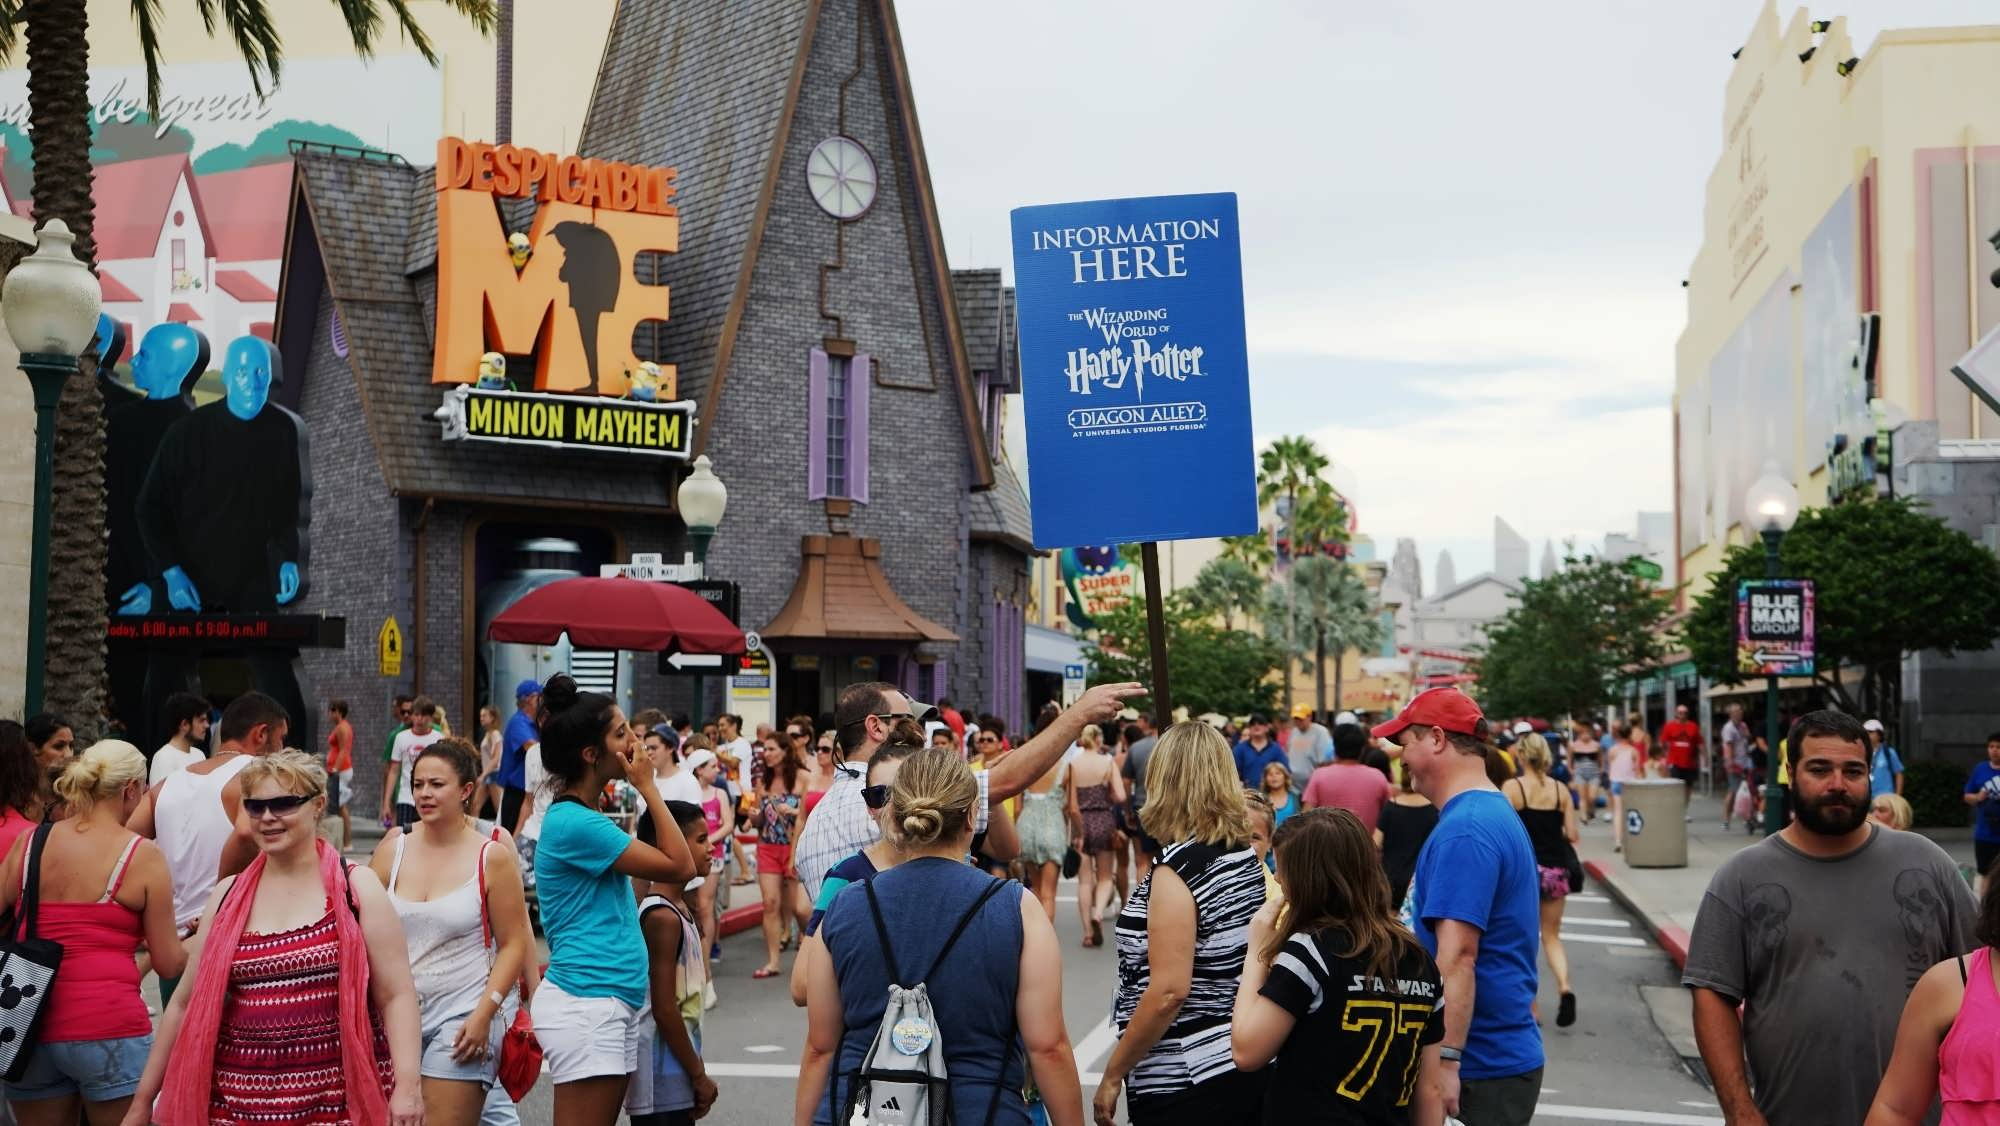 Team Members assisting with Diagon Alley directions